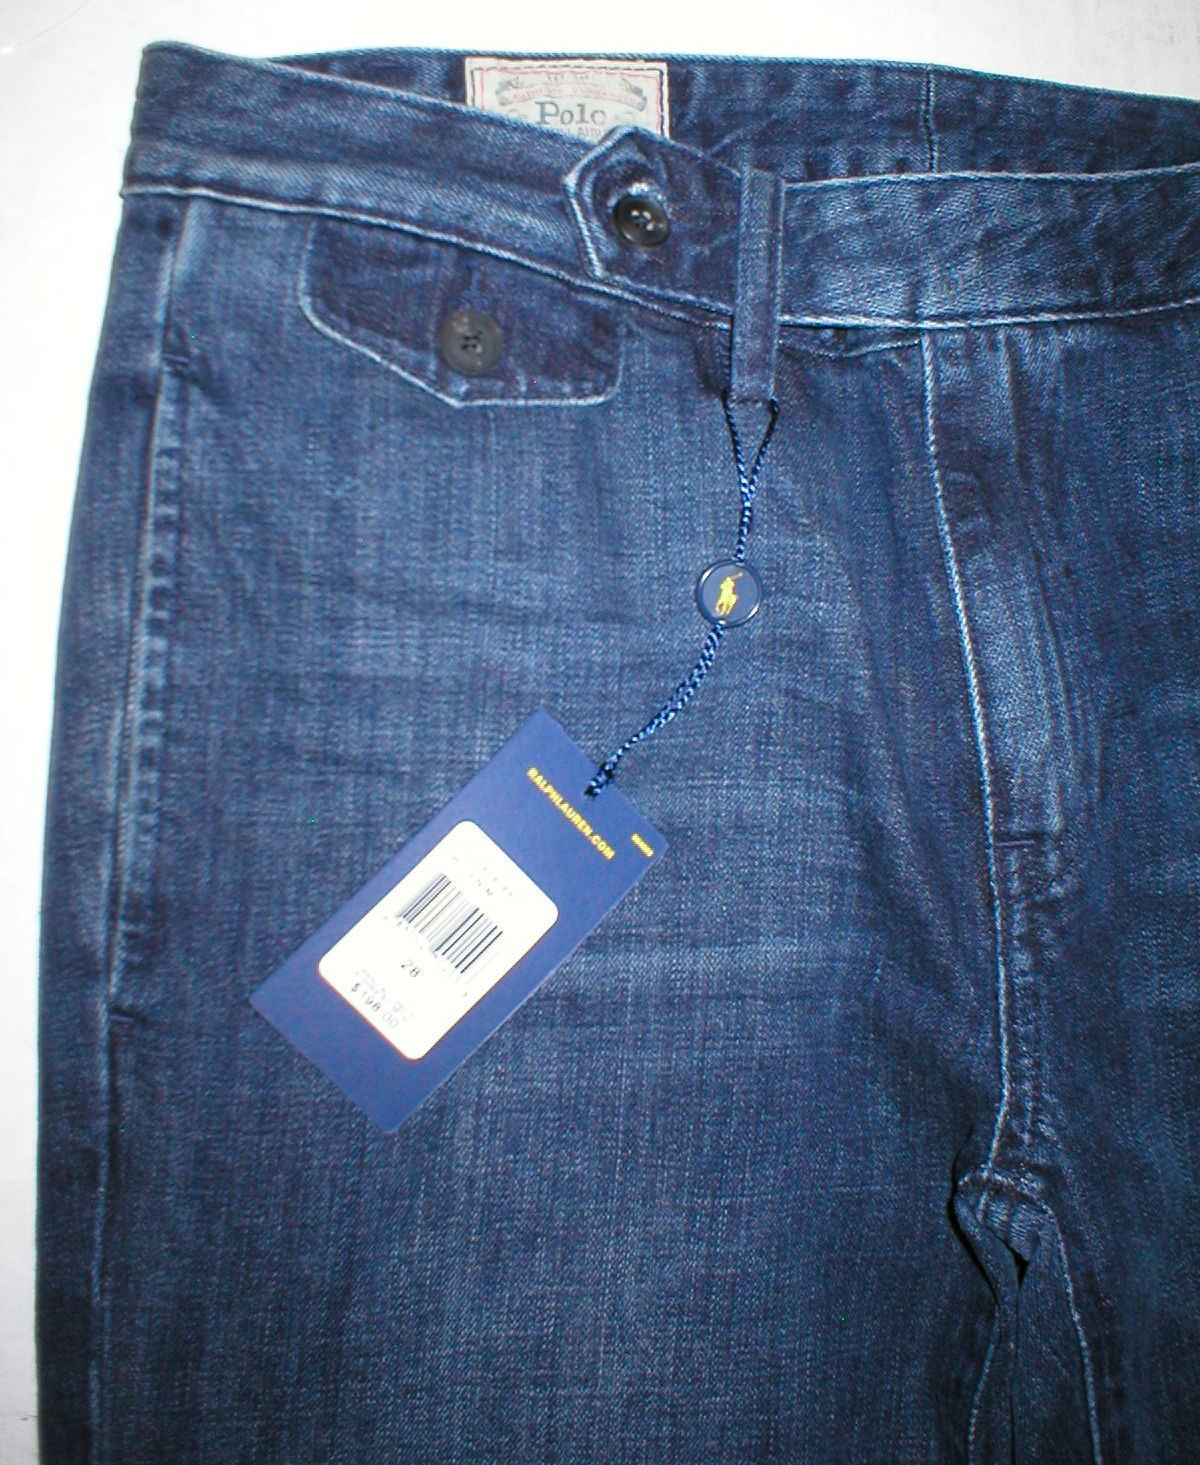 New Womens Ralph Lauren Polo Jeans NWT $198 Flare Tall 31 Tailored Look Dark